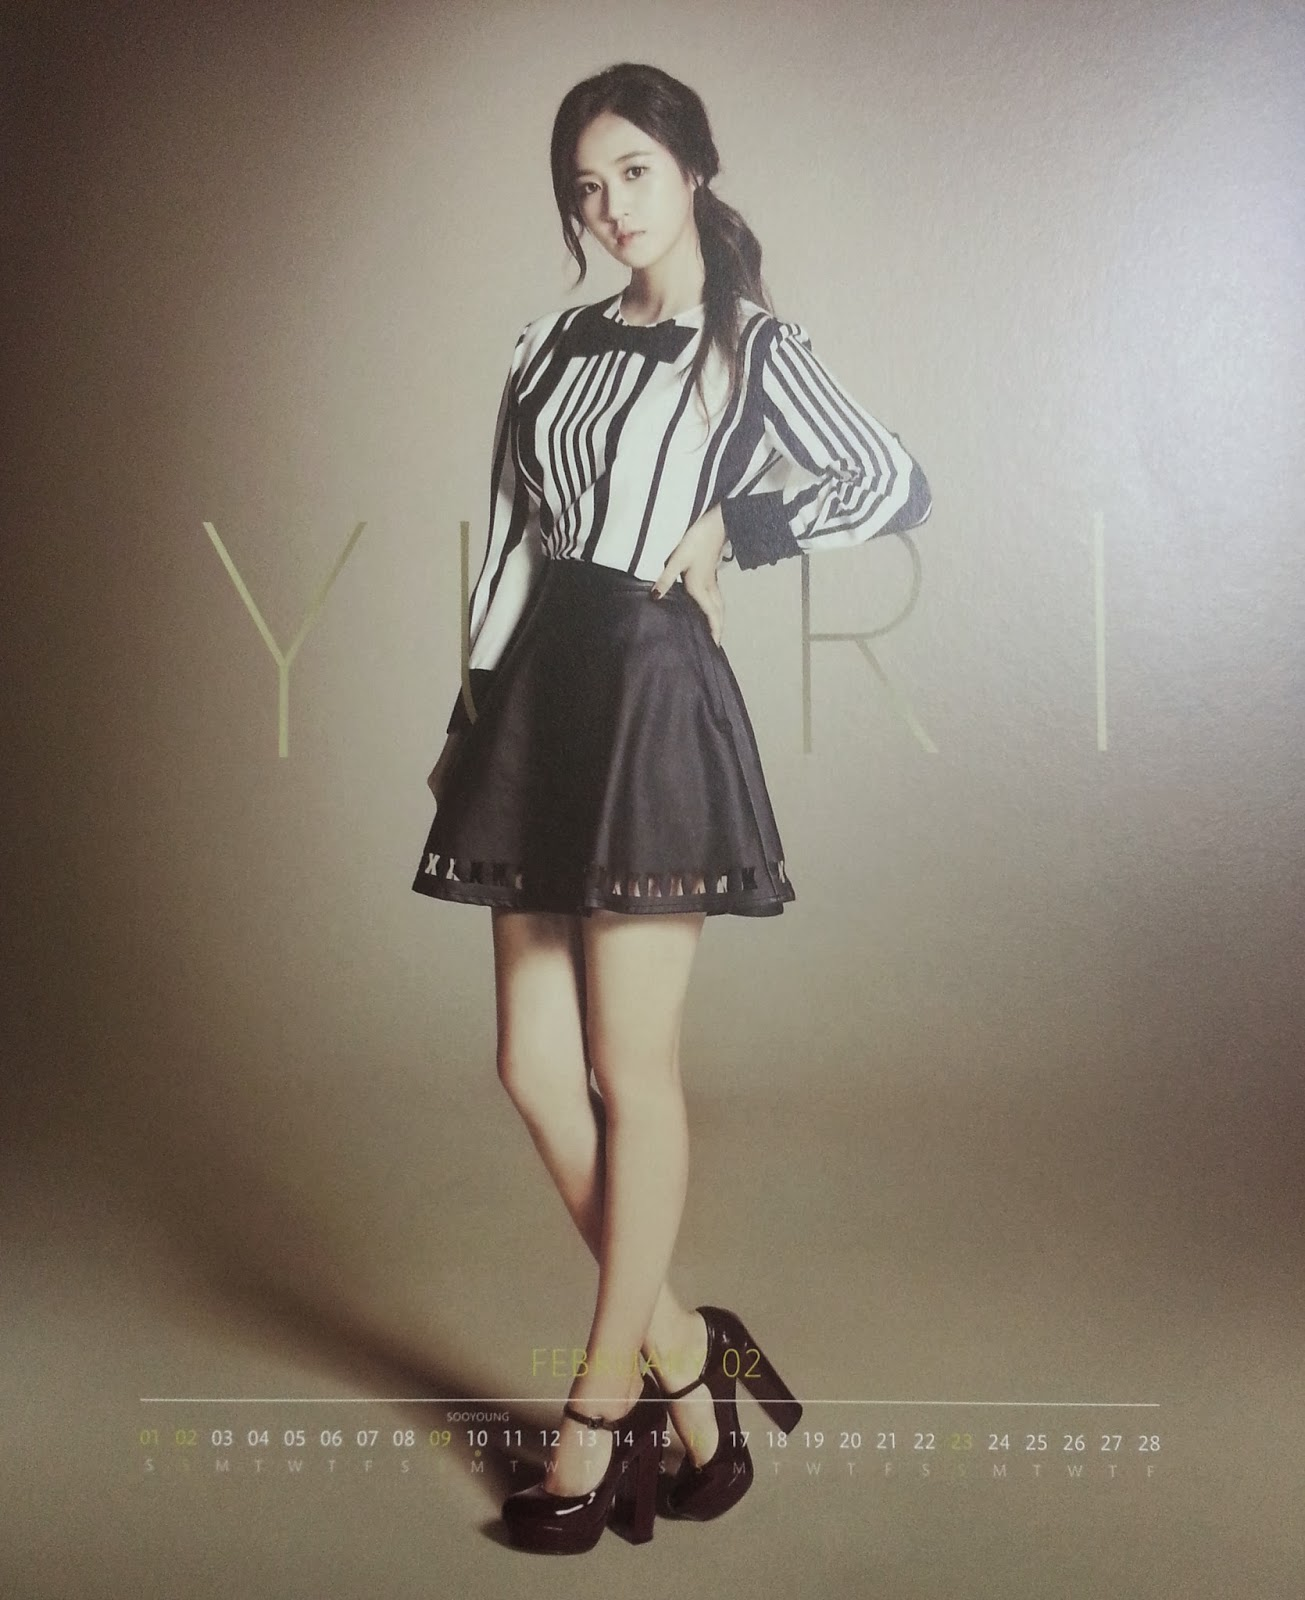 Calendar 2014, Sooyoung and SNSD on Pinterest